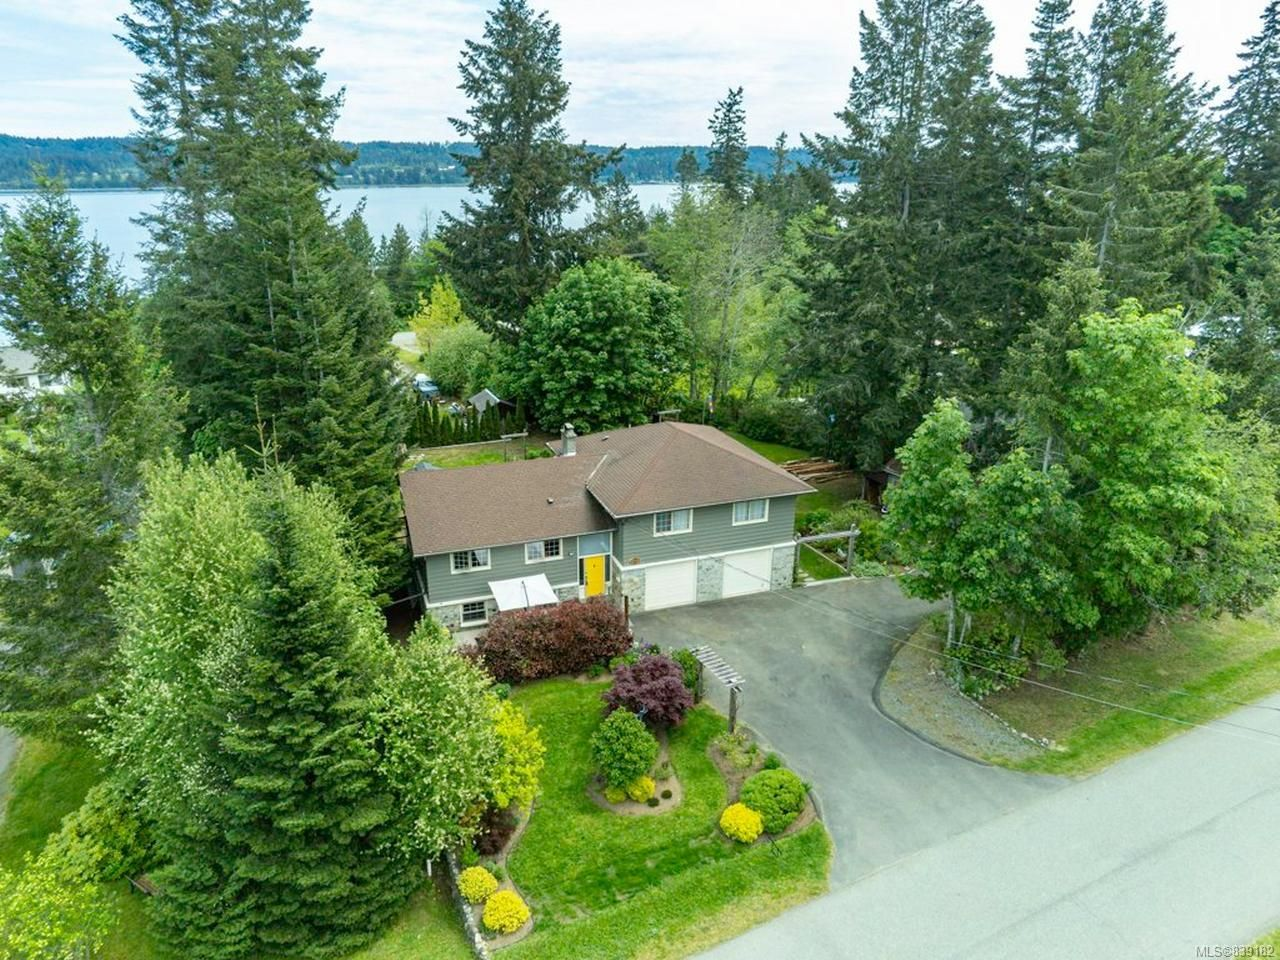 Main Photo: 6622 Mystery Beach Rd in FANNY BAY: CV Union Bay/Fanny Bay House for sale (Comox Valley)  : MLS®# 839182